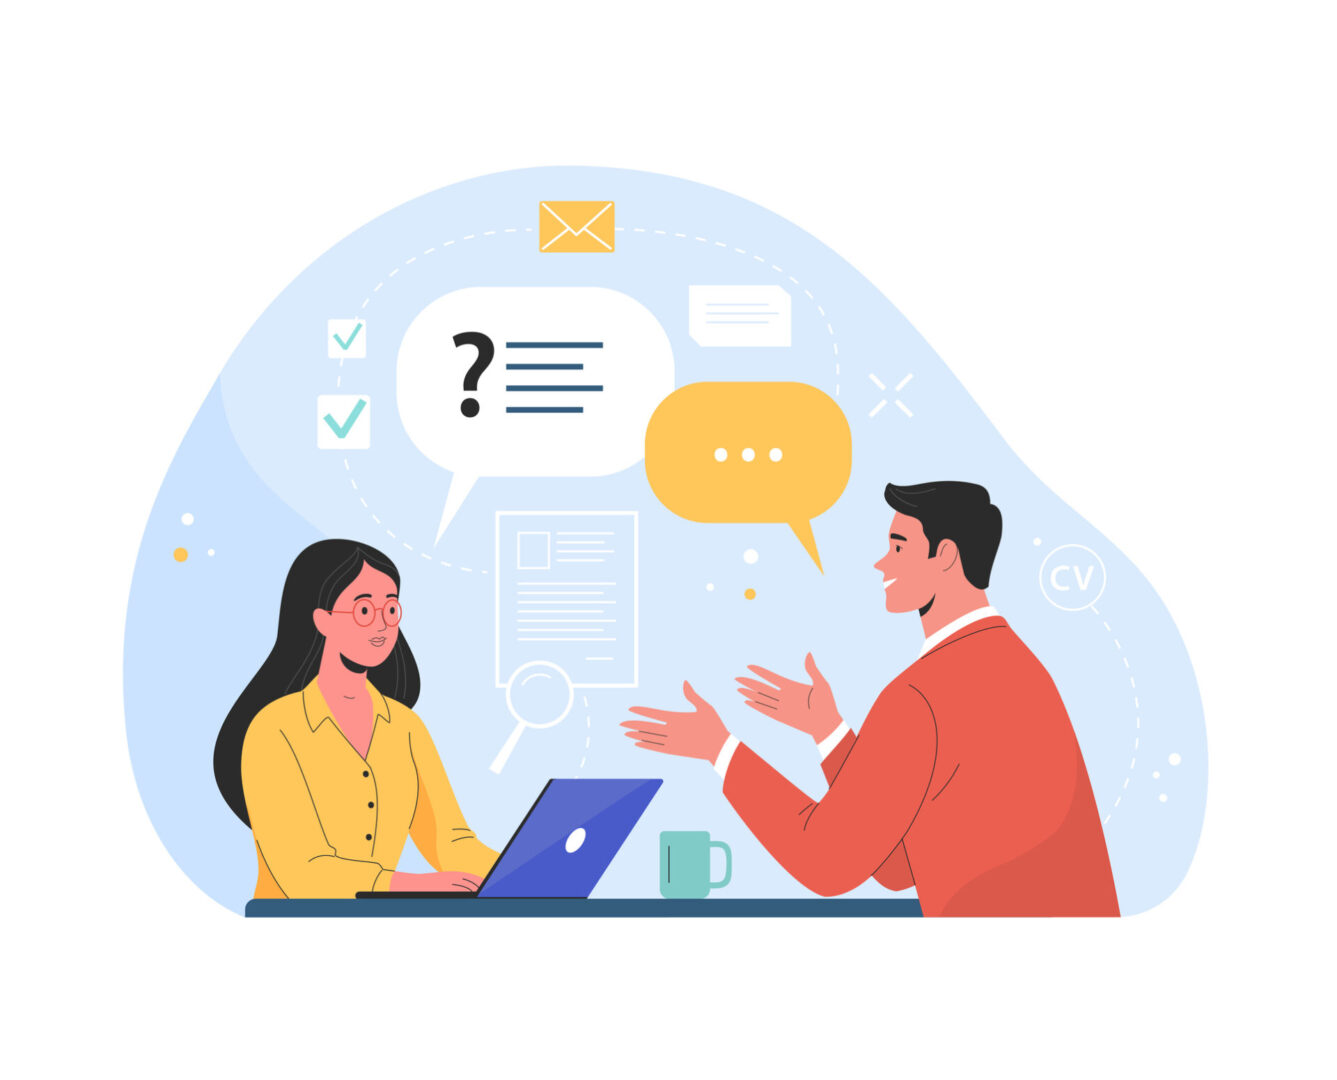 Vector flat modern illustration of a man talking to a young woman with laptop. Isolated on background